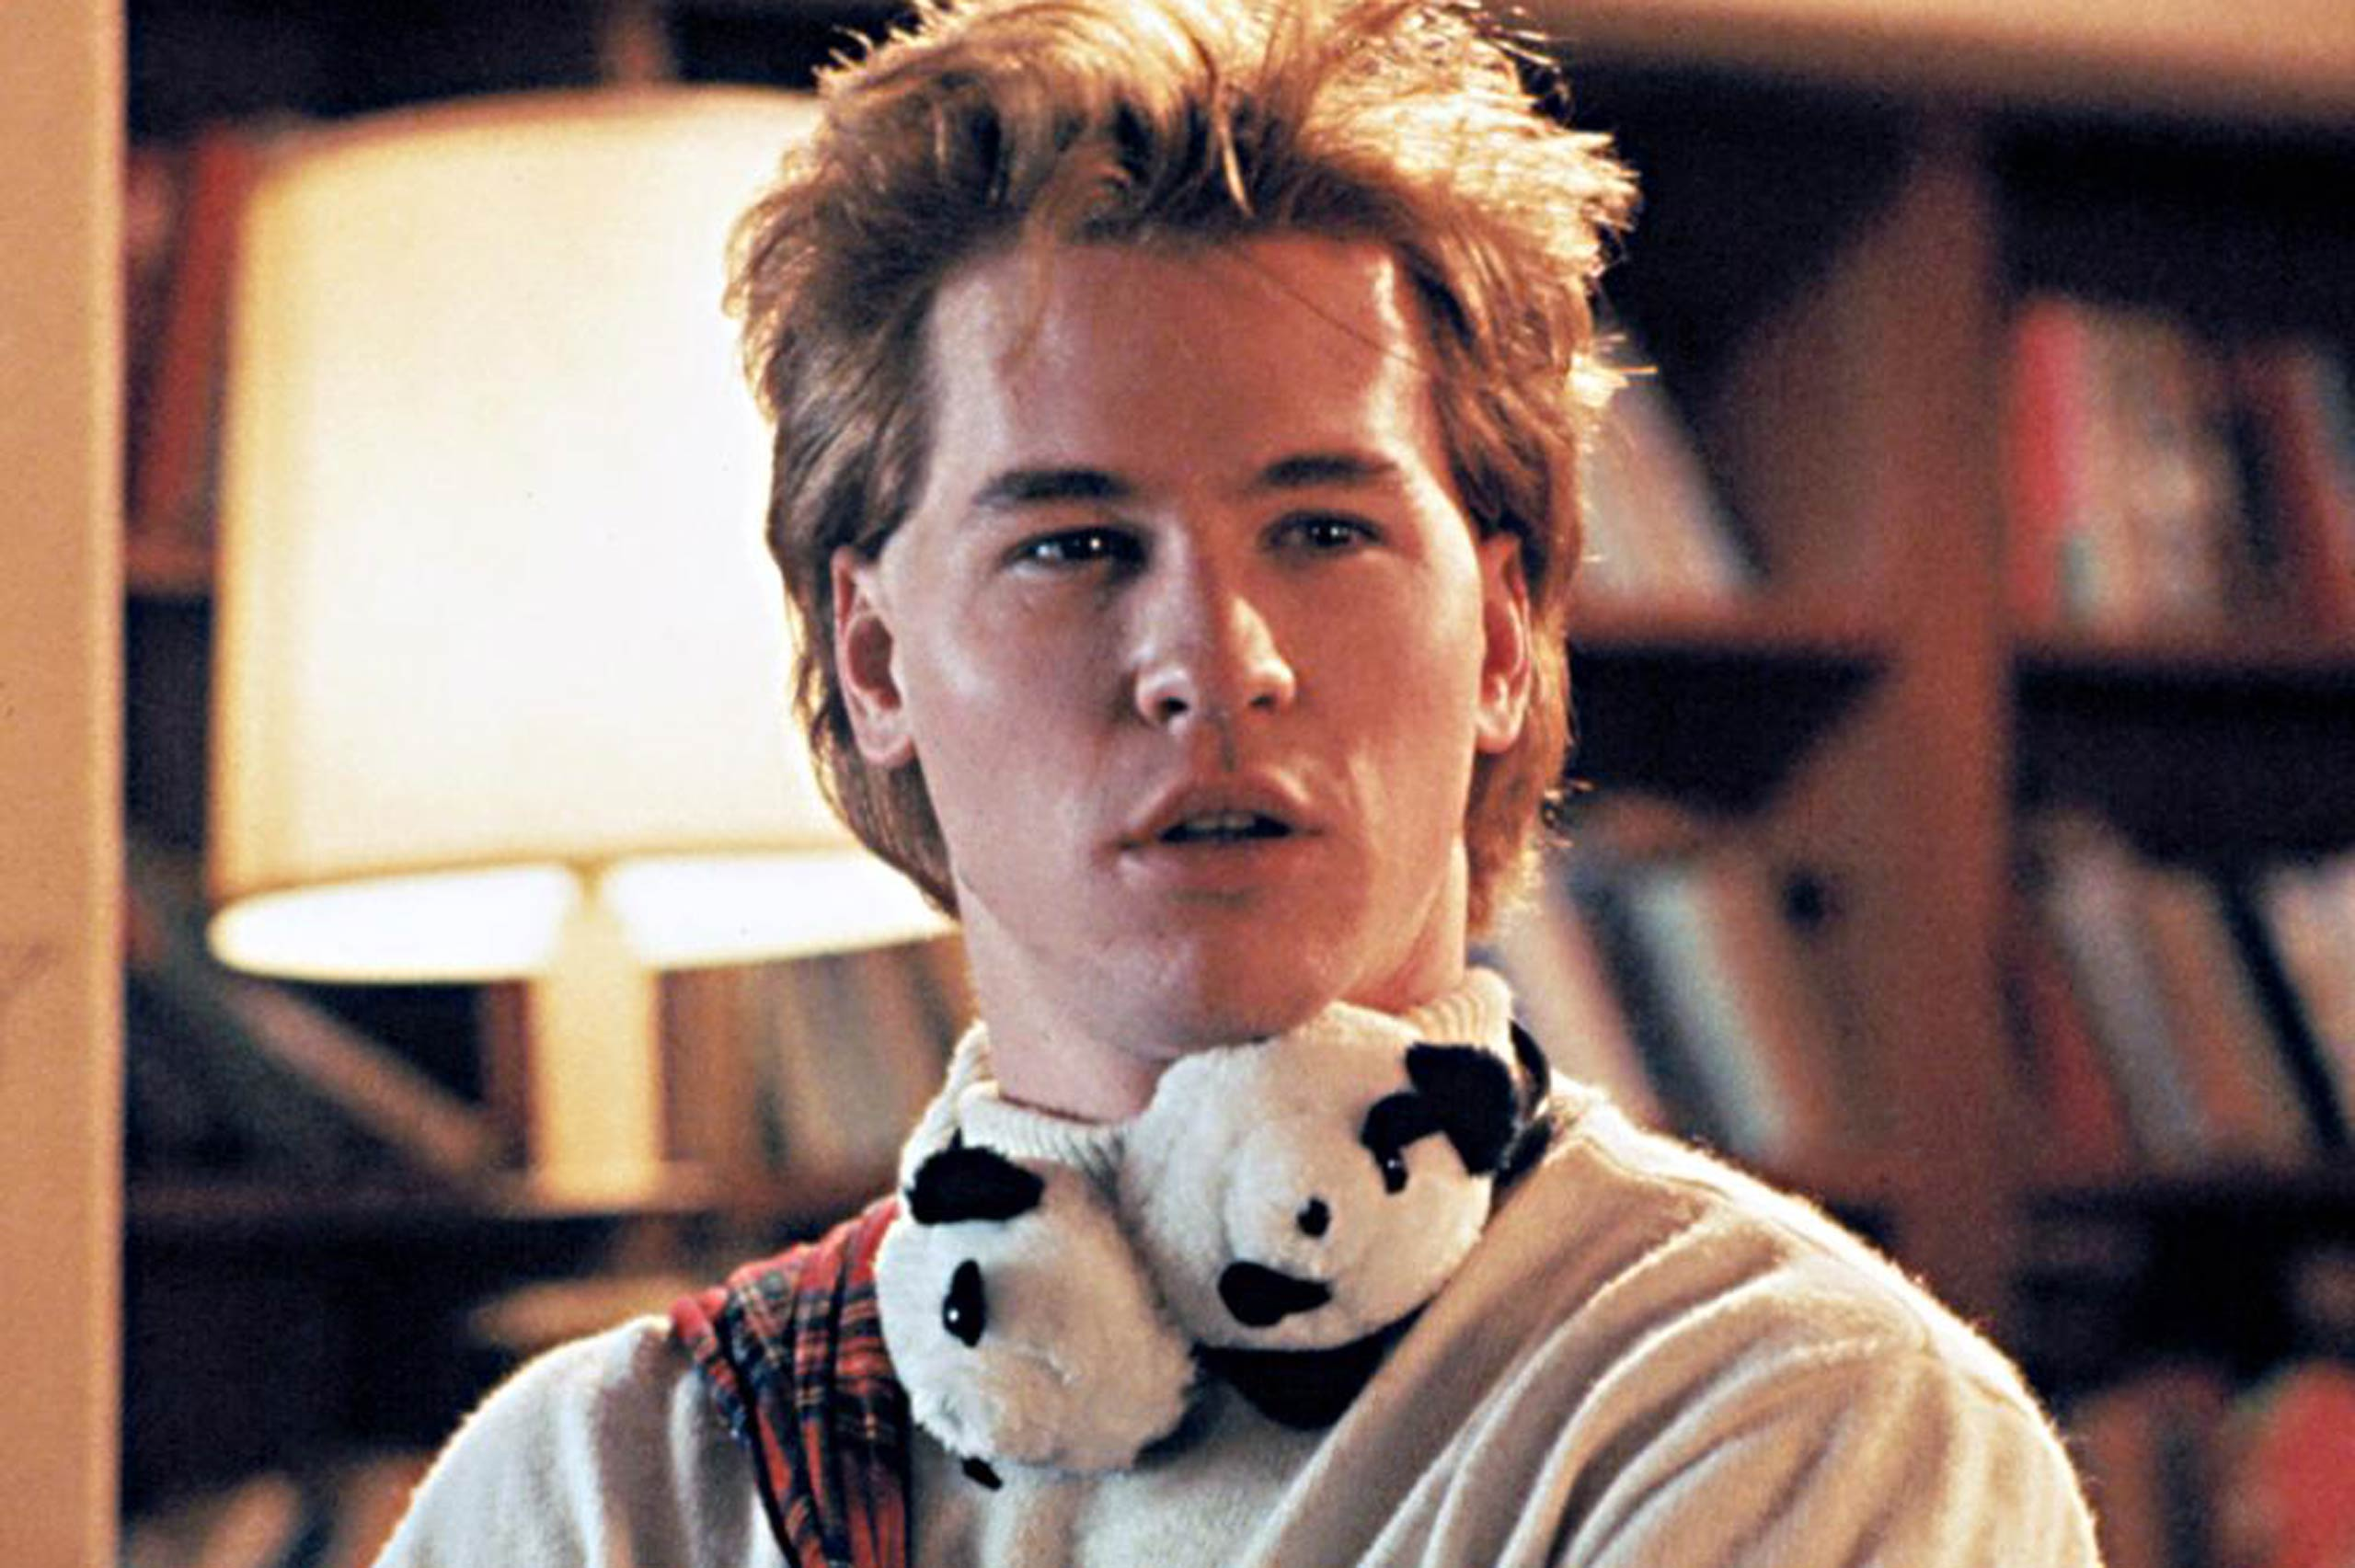 Real Genius (NBC)                                                              A present-day reboot of the cult Val Kilmer film, Real Genius will be a workplace comedy about the relationship between a physics legend and his naive coworker.